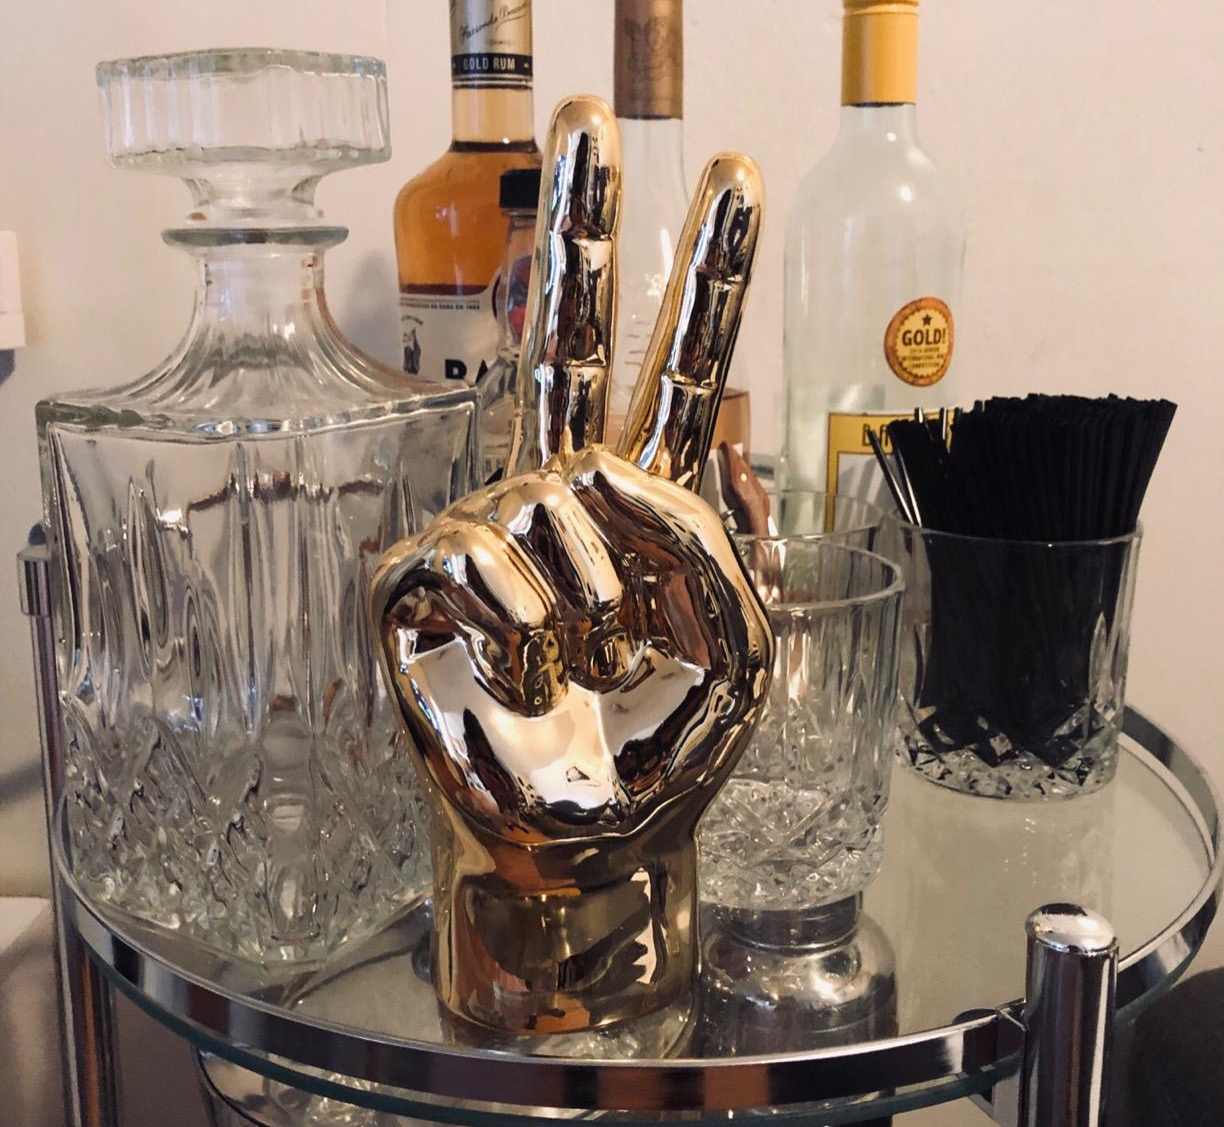 a reviewer photo of a golden peace sign hand statue sitting on a bar cart